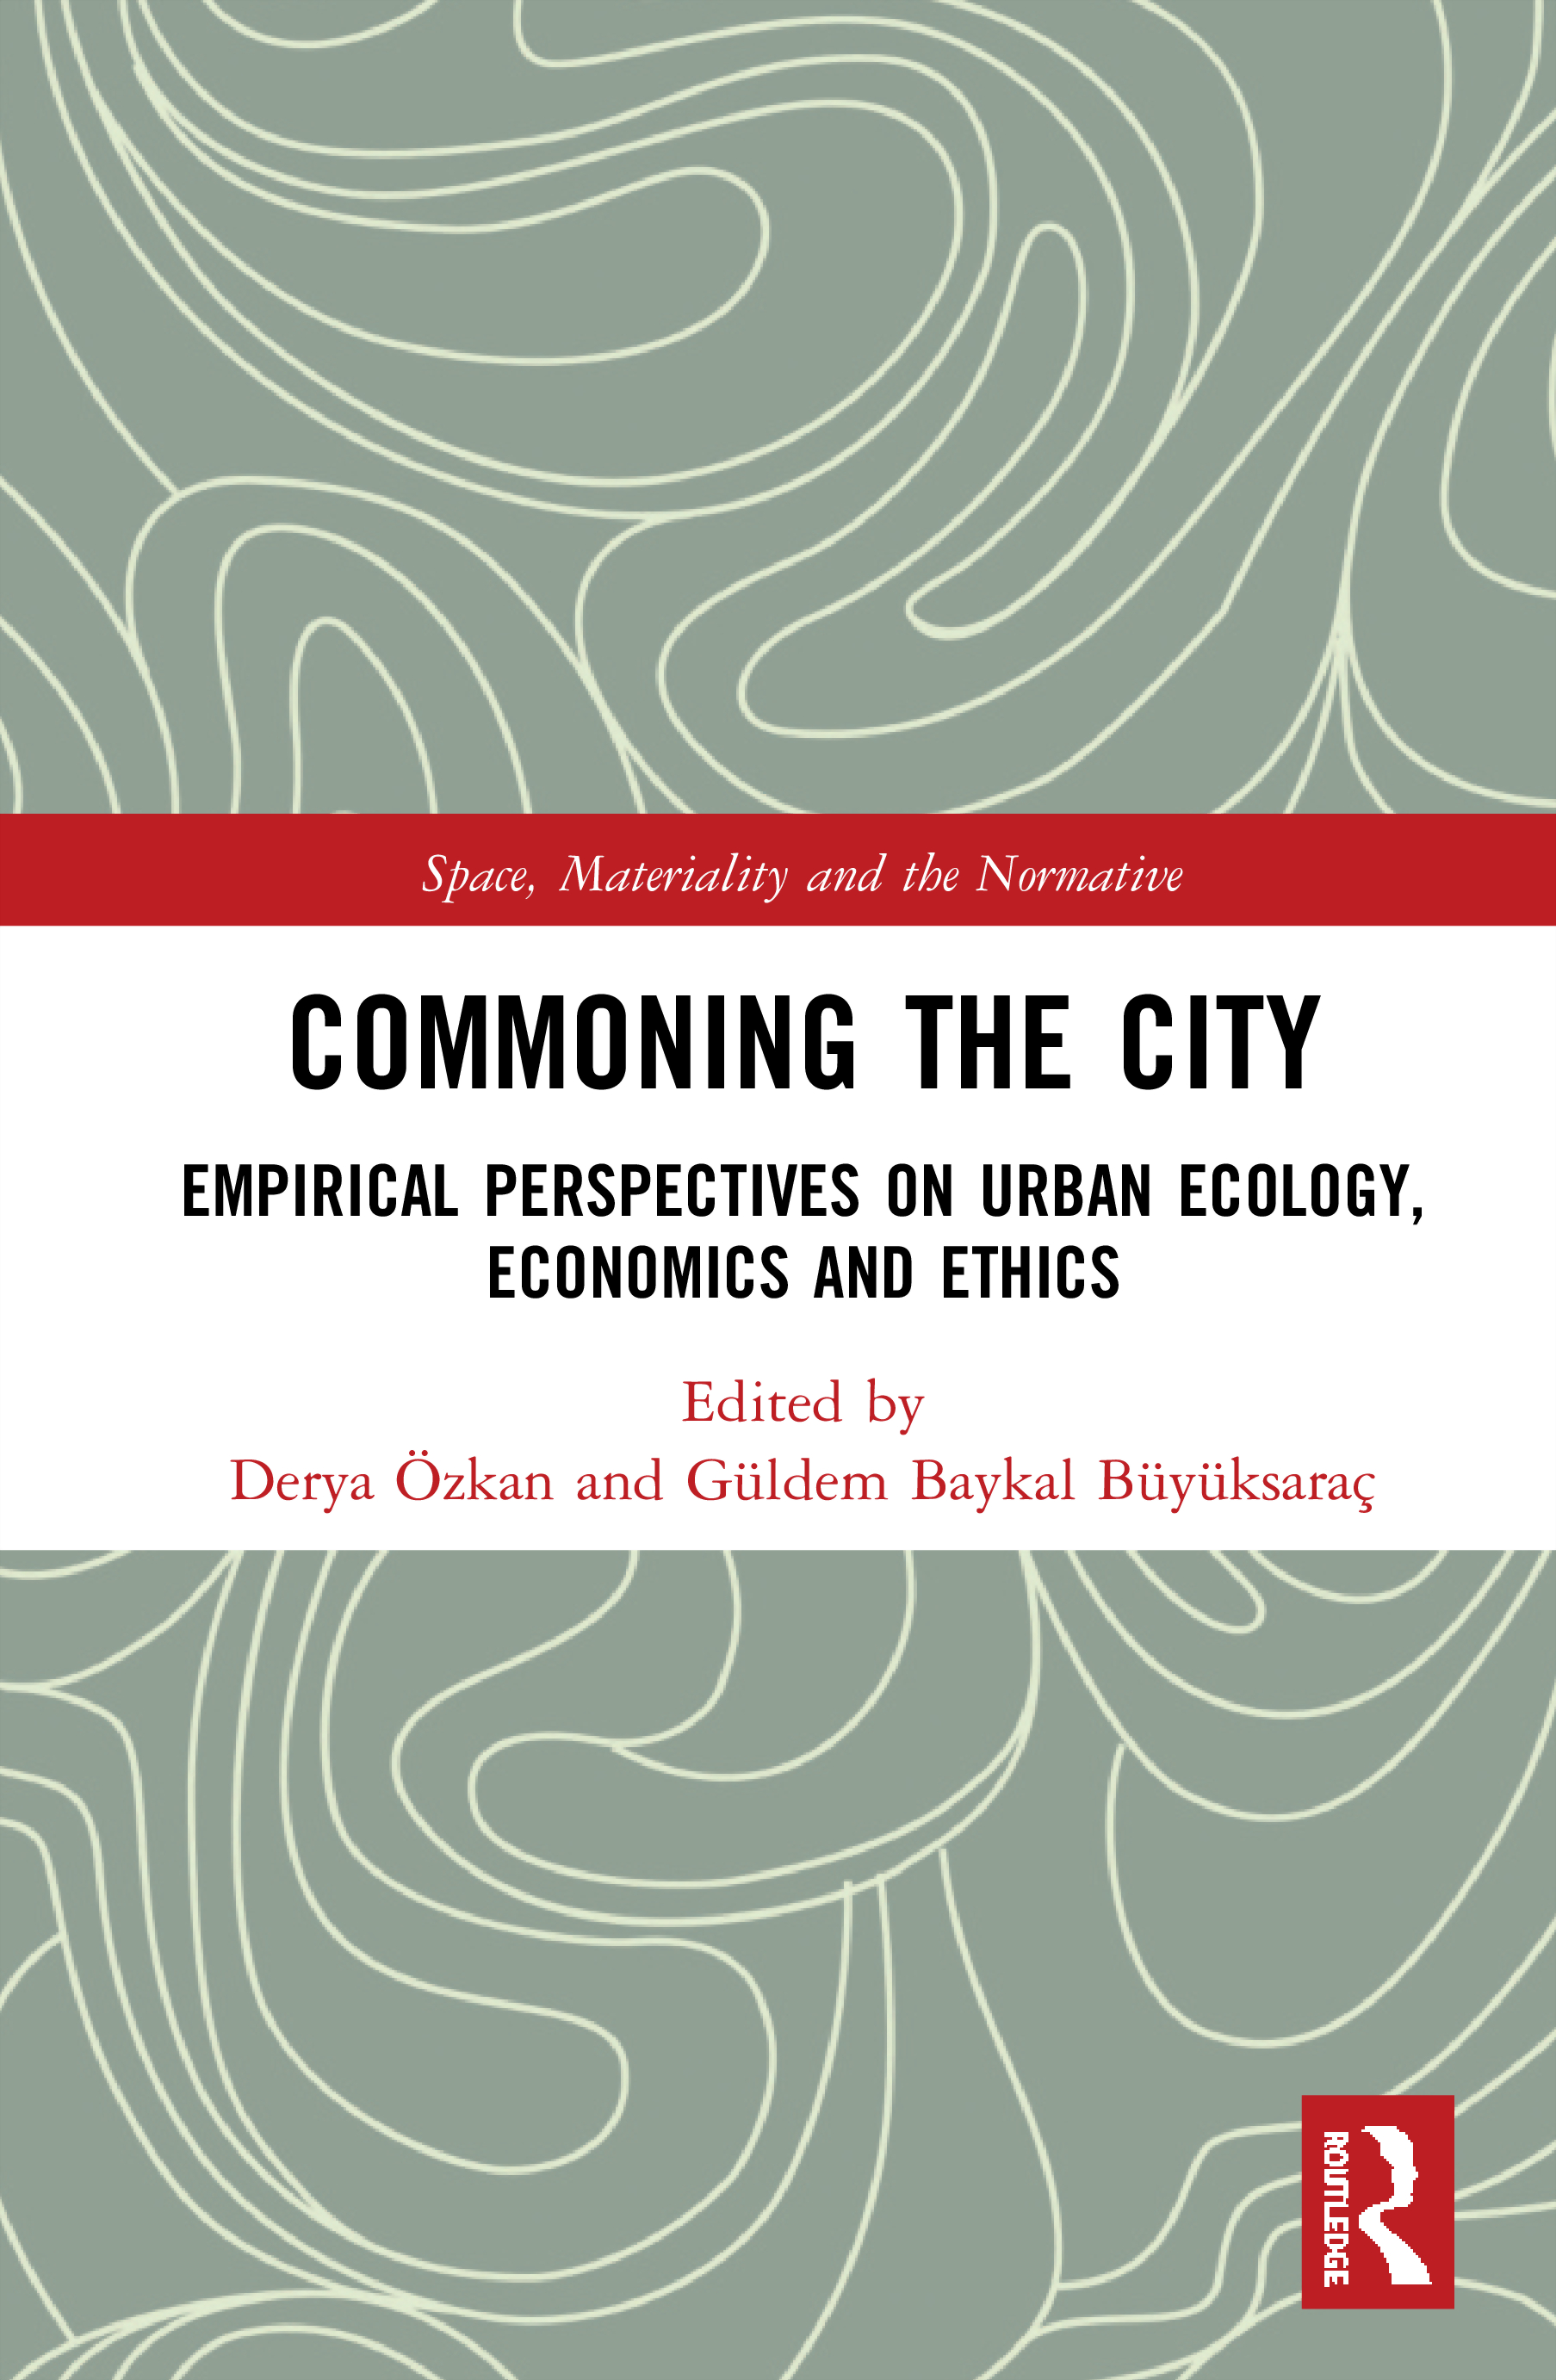 Commoning the City: Empirical Perspectives on Urban Ecology, Economics and Ethics book cover